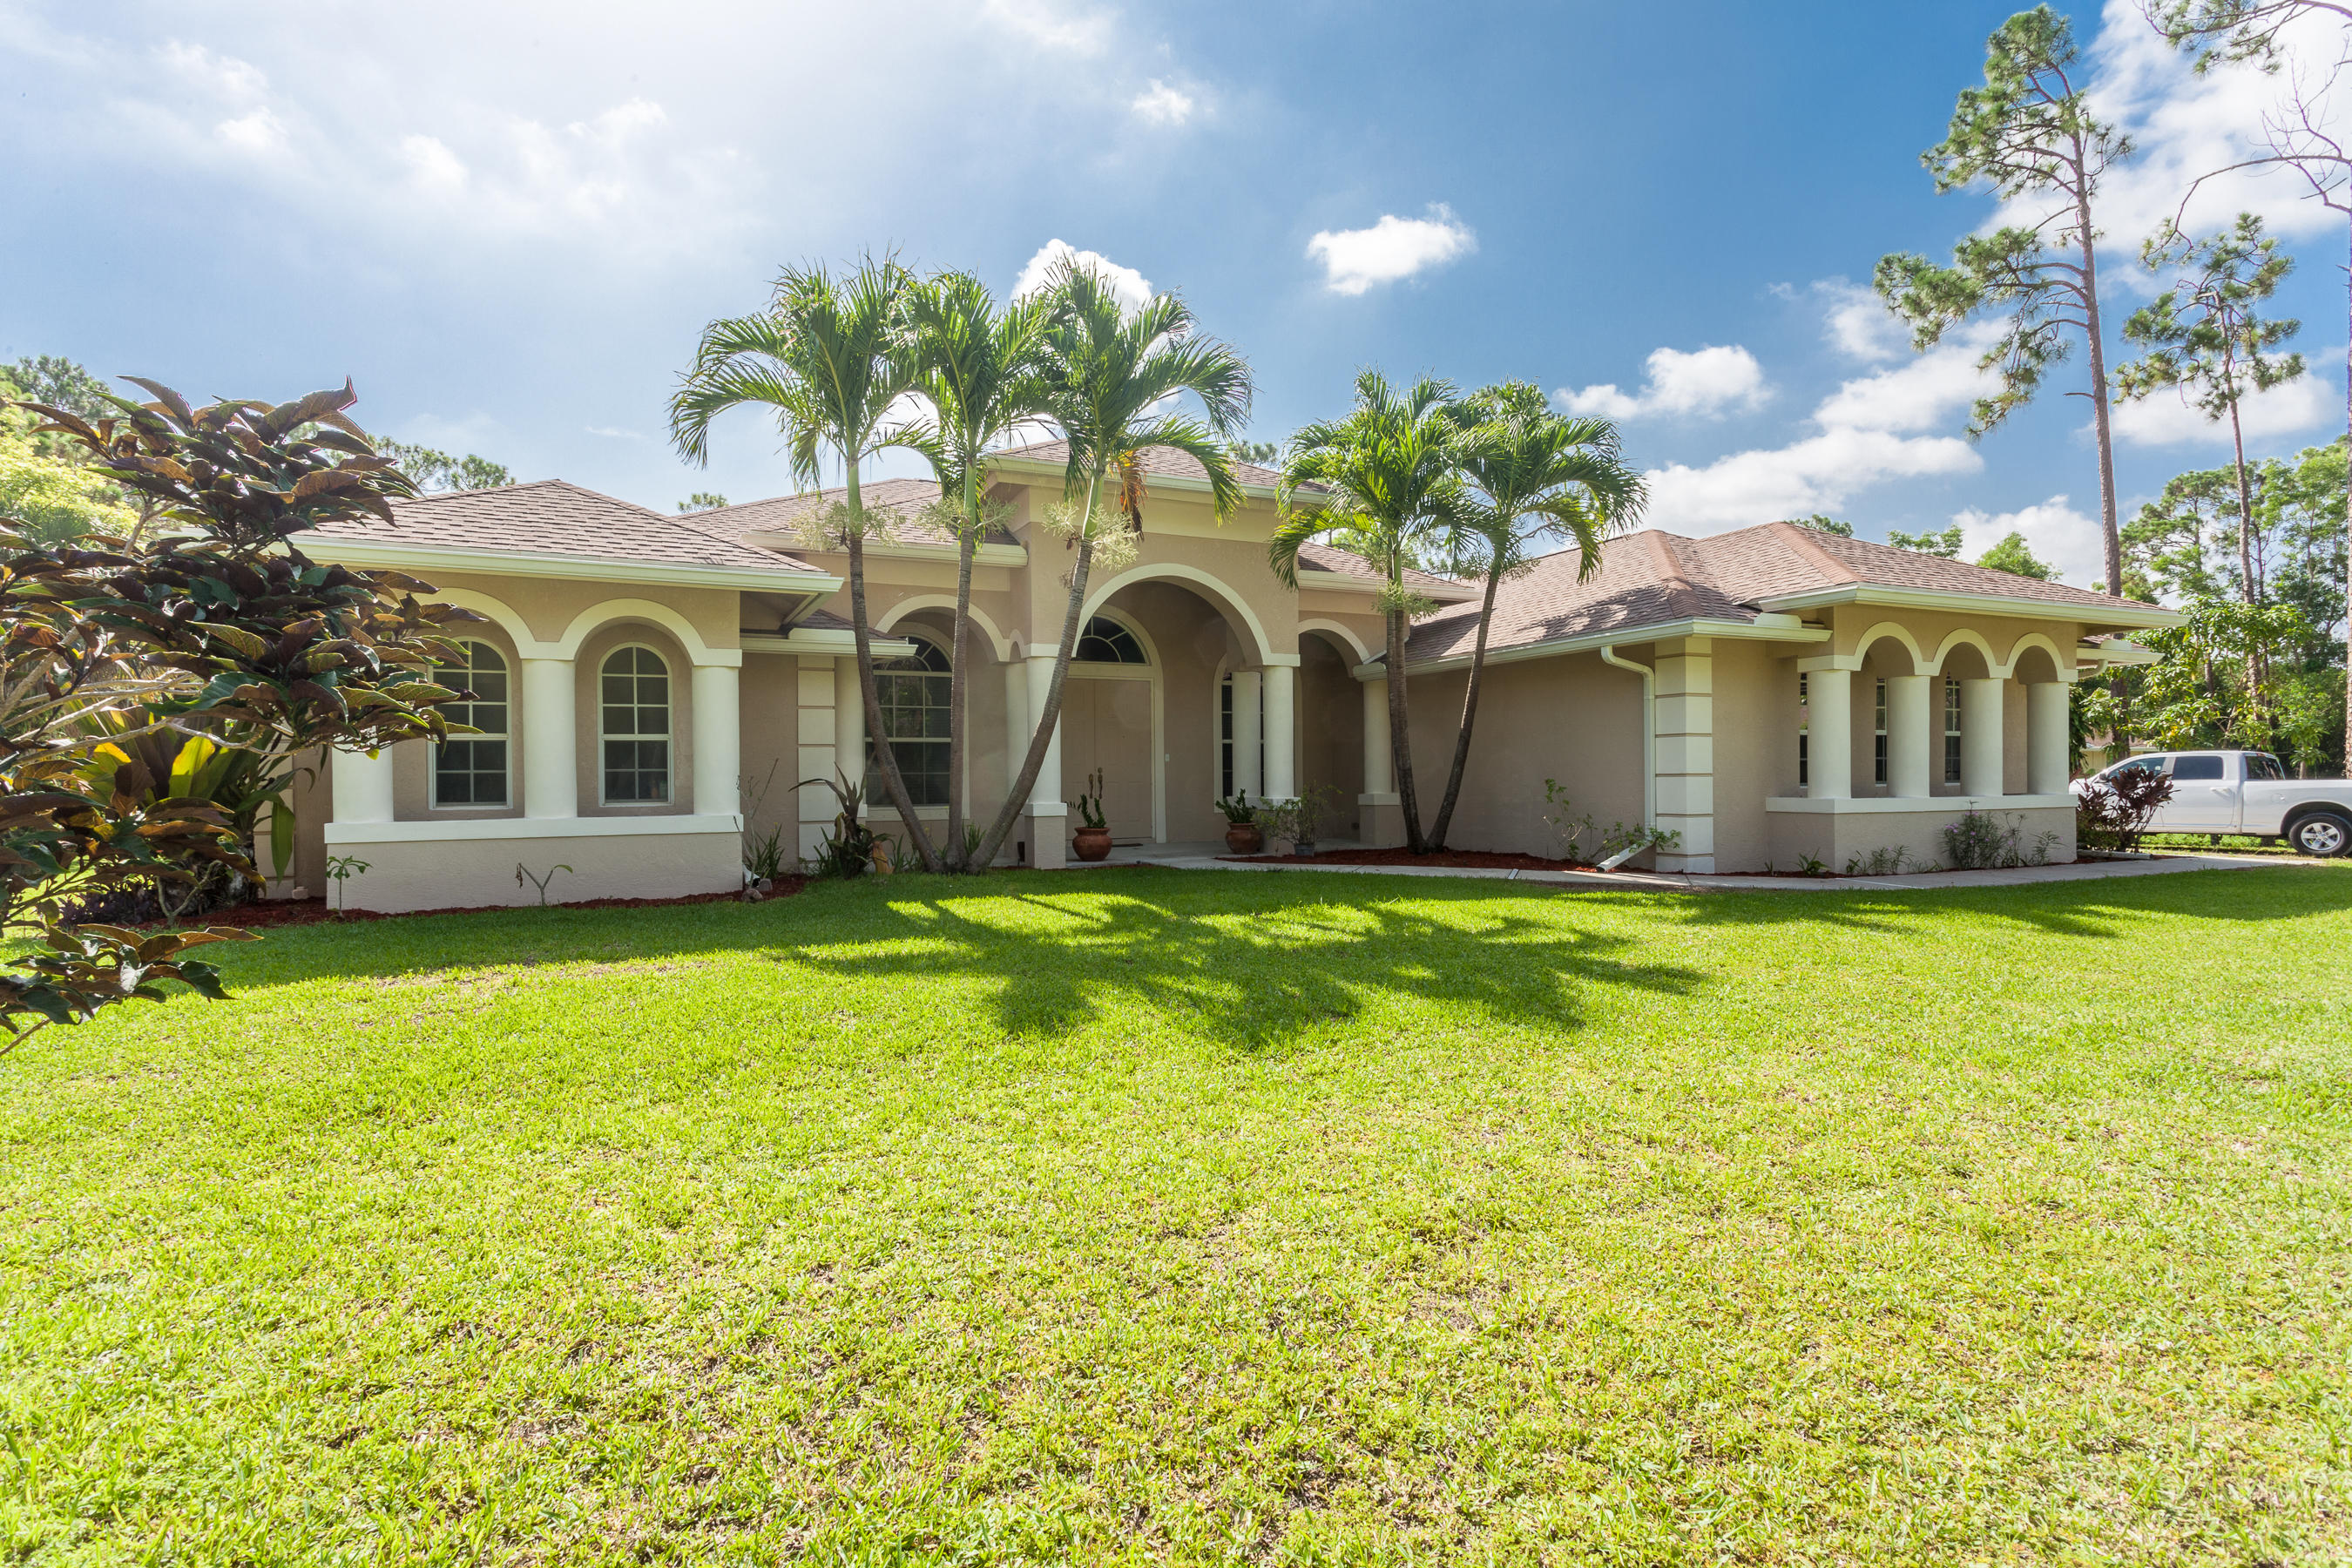 Home for sale in AGREAGE West Palm Beach Florida